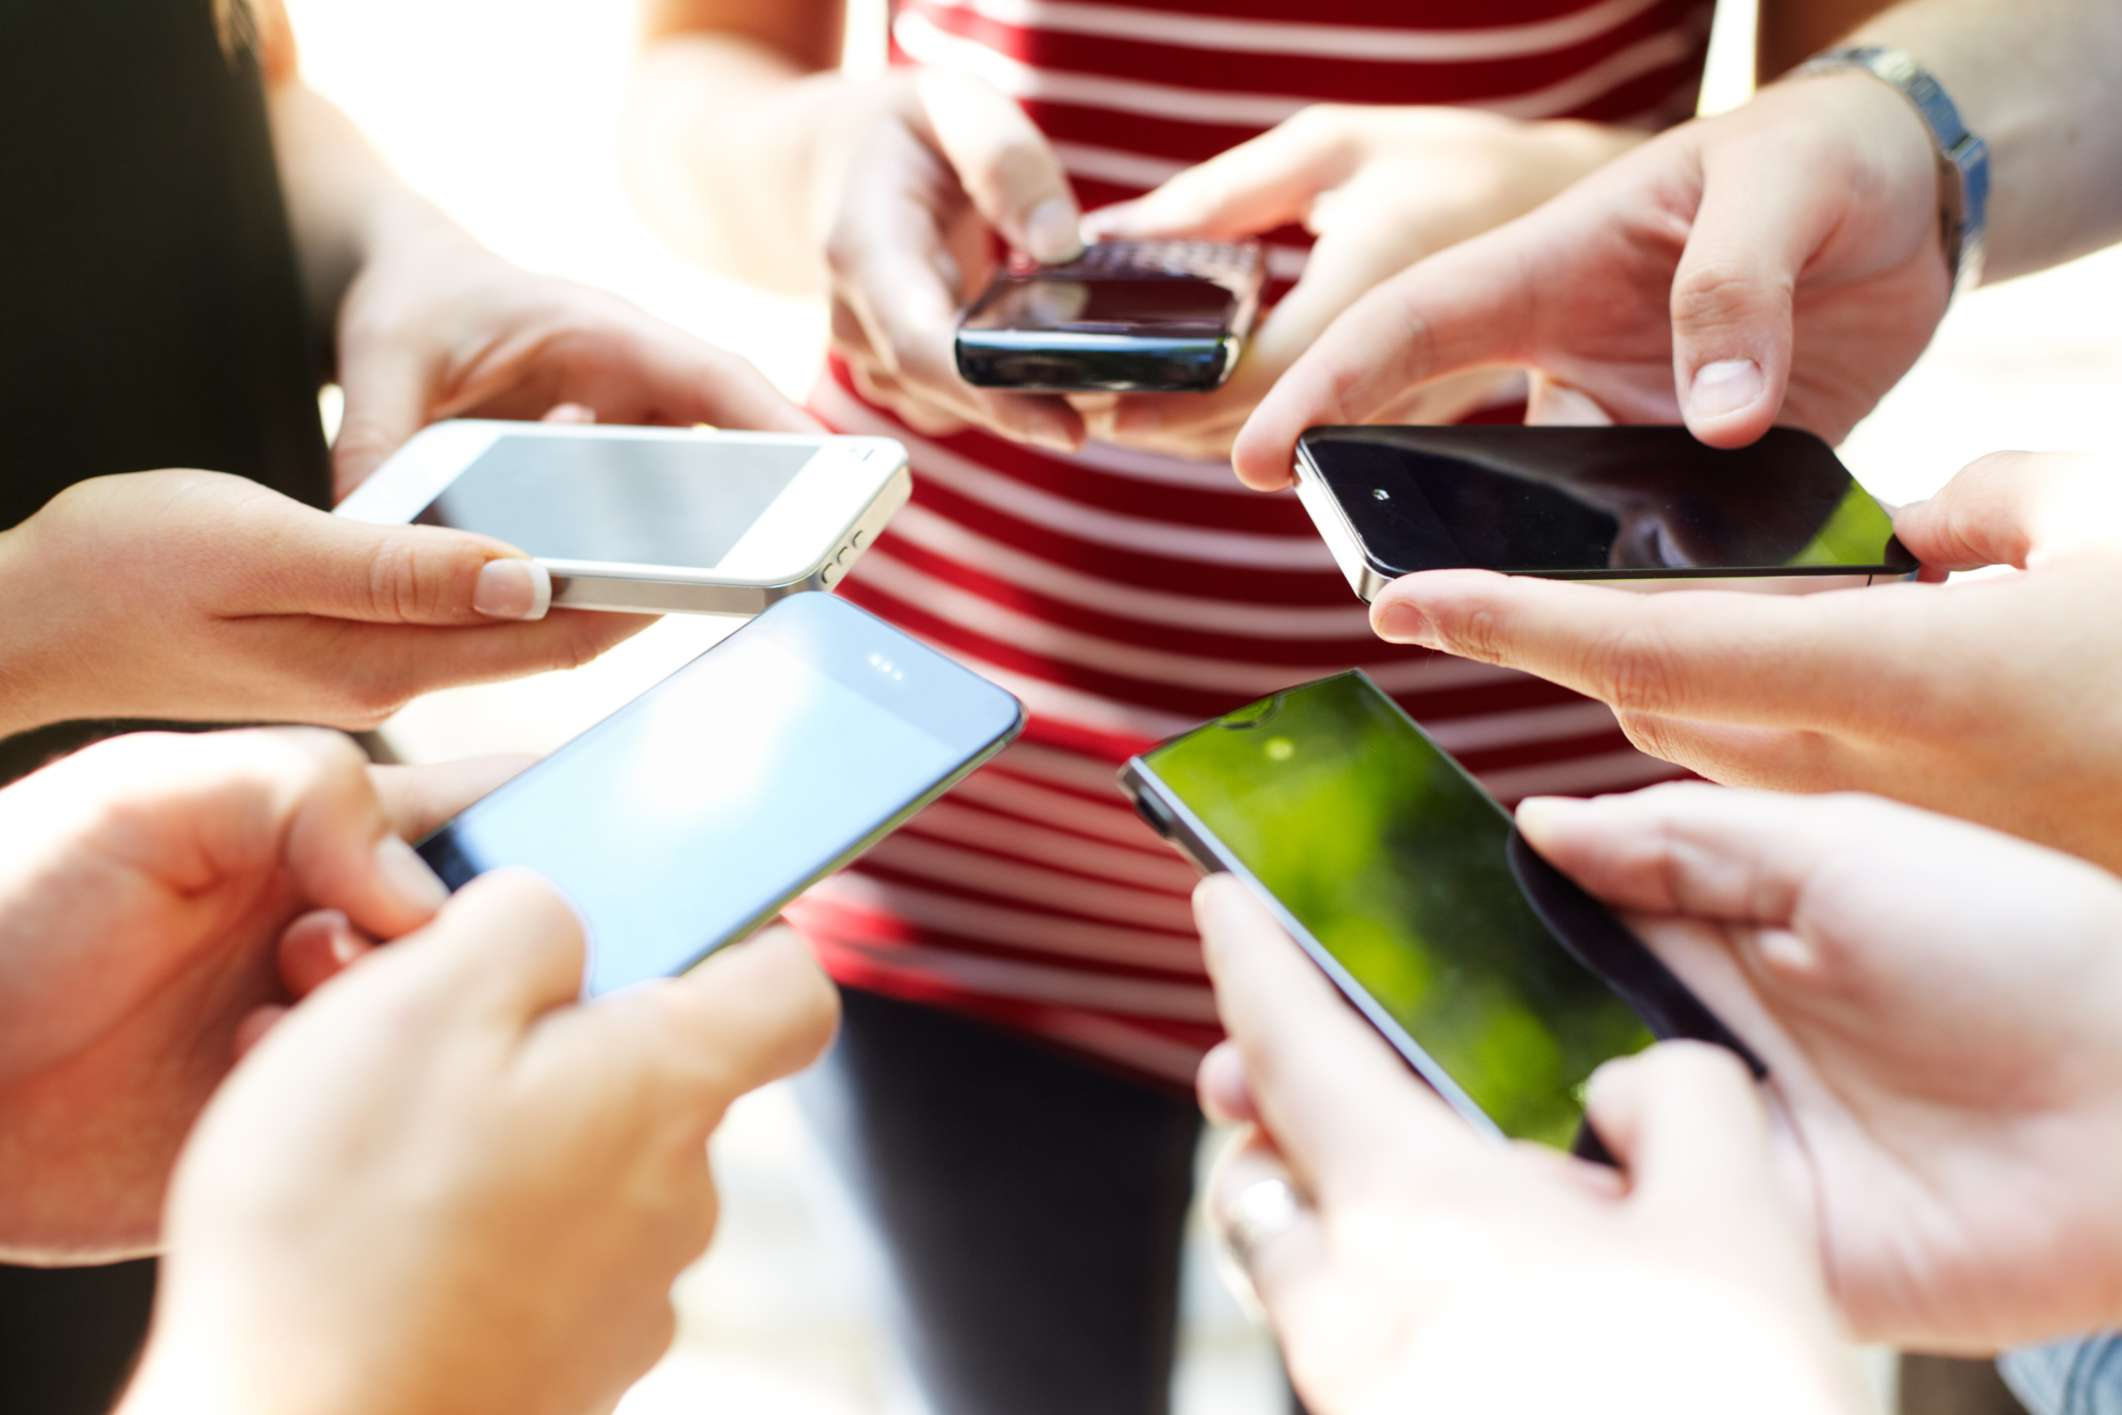 Several pairs of hands holding smartphones.